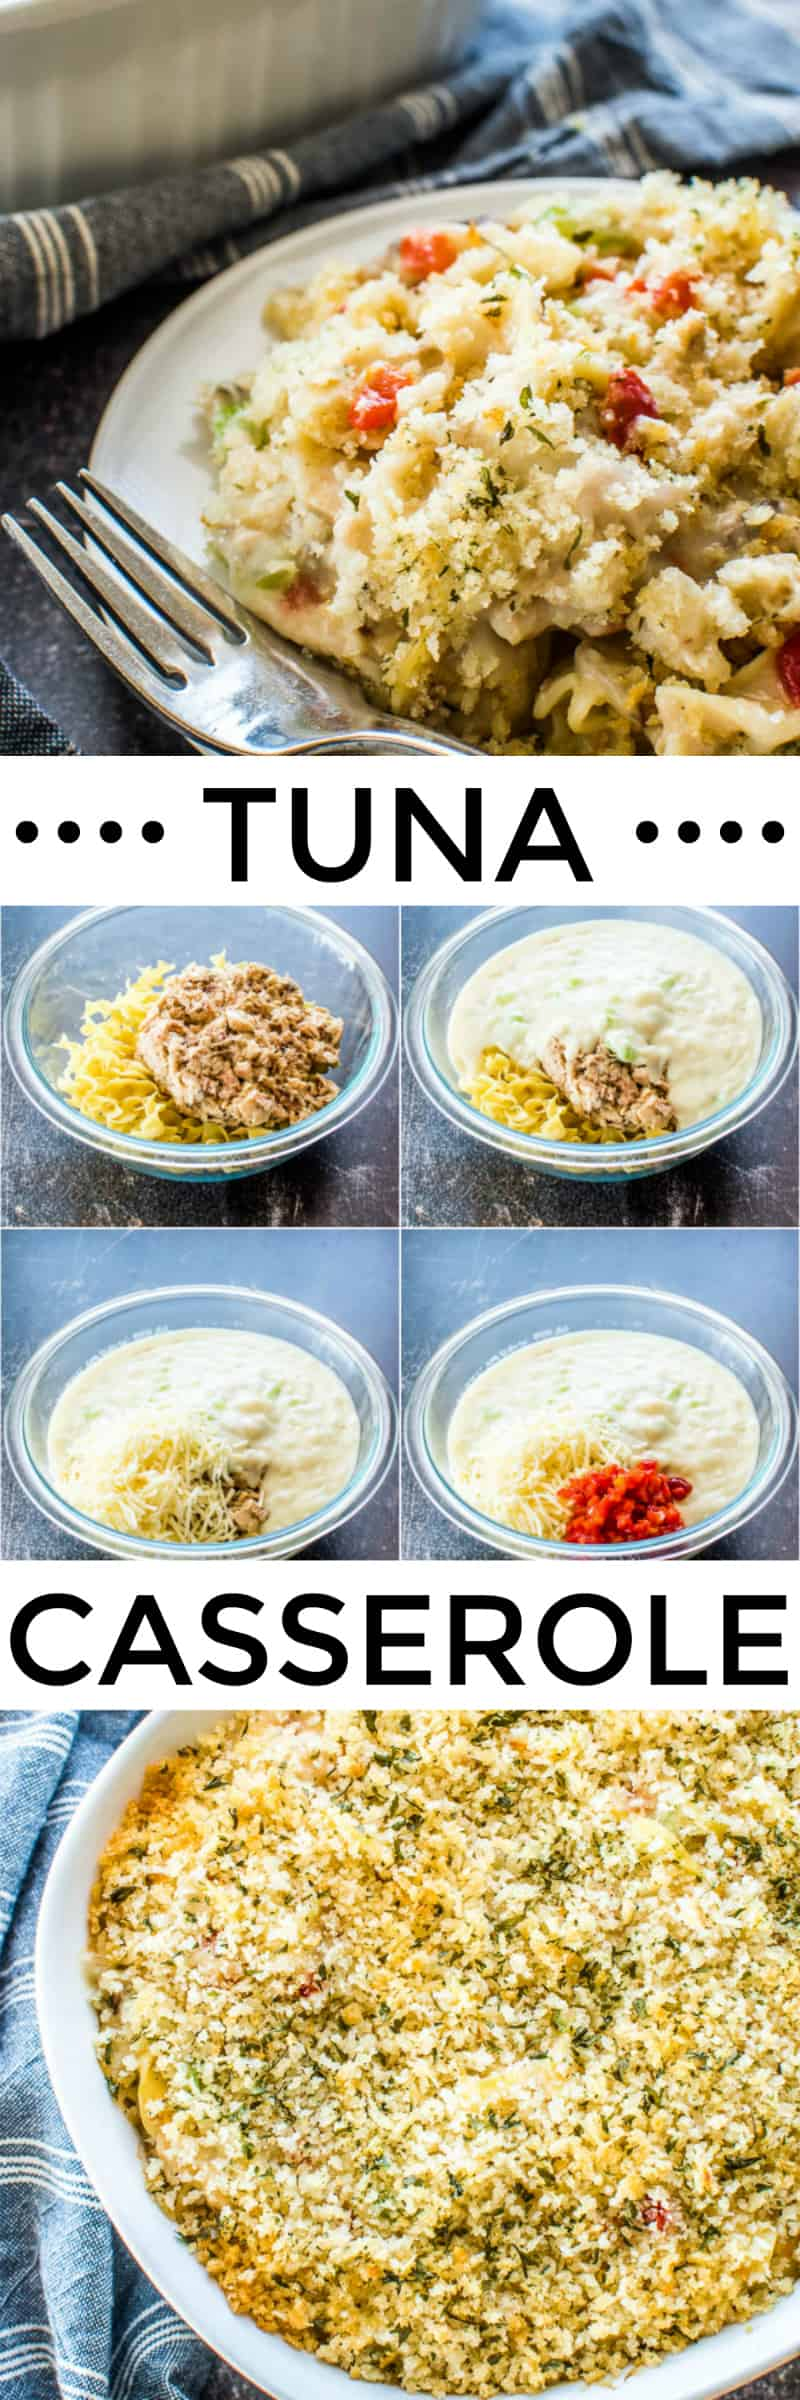 Step by step and finished photos of Tuna Casserole